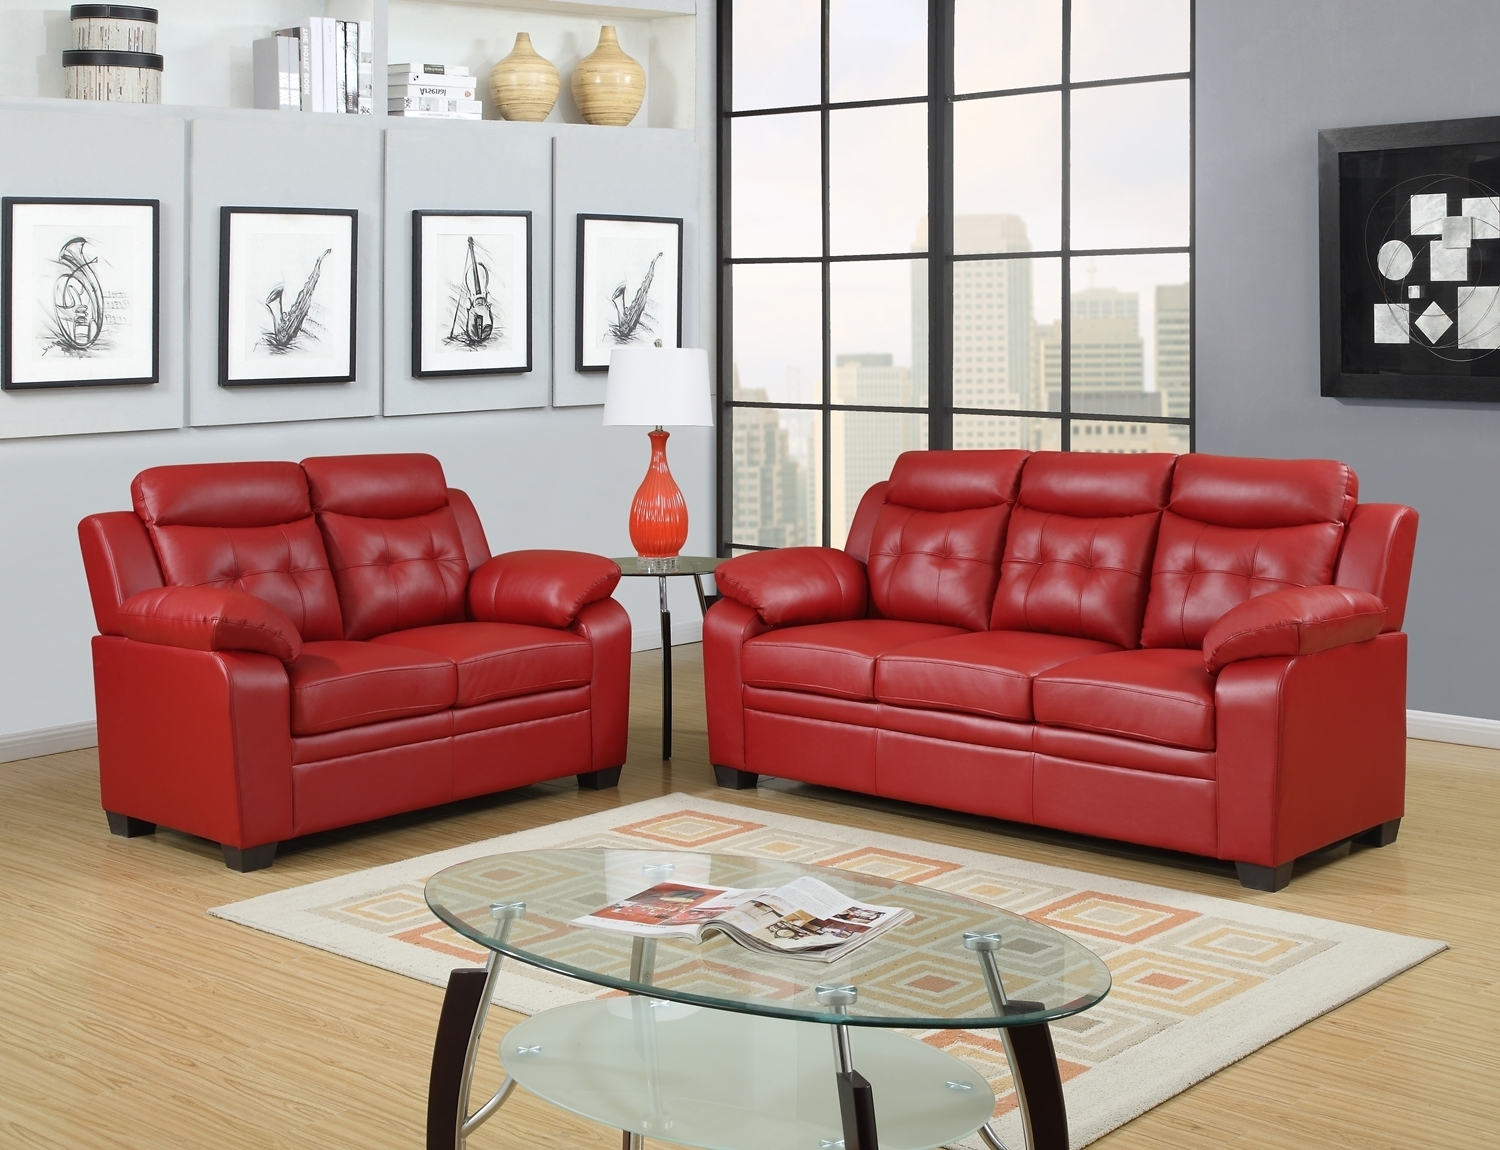 Remarkable Red Leather Sofas And Loveseats Pics Ideas – Surripui Within Red Leather Couches And Loveseats (Image 8 of 10)